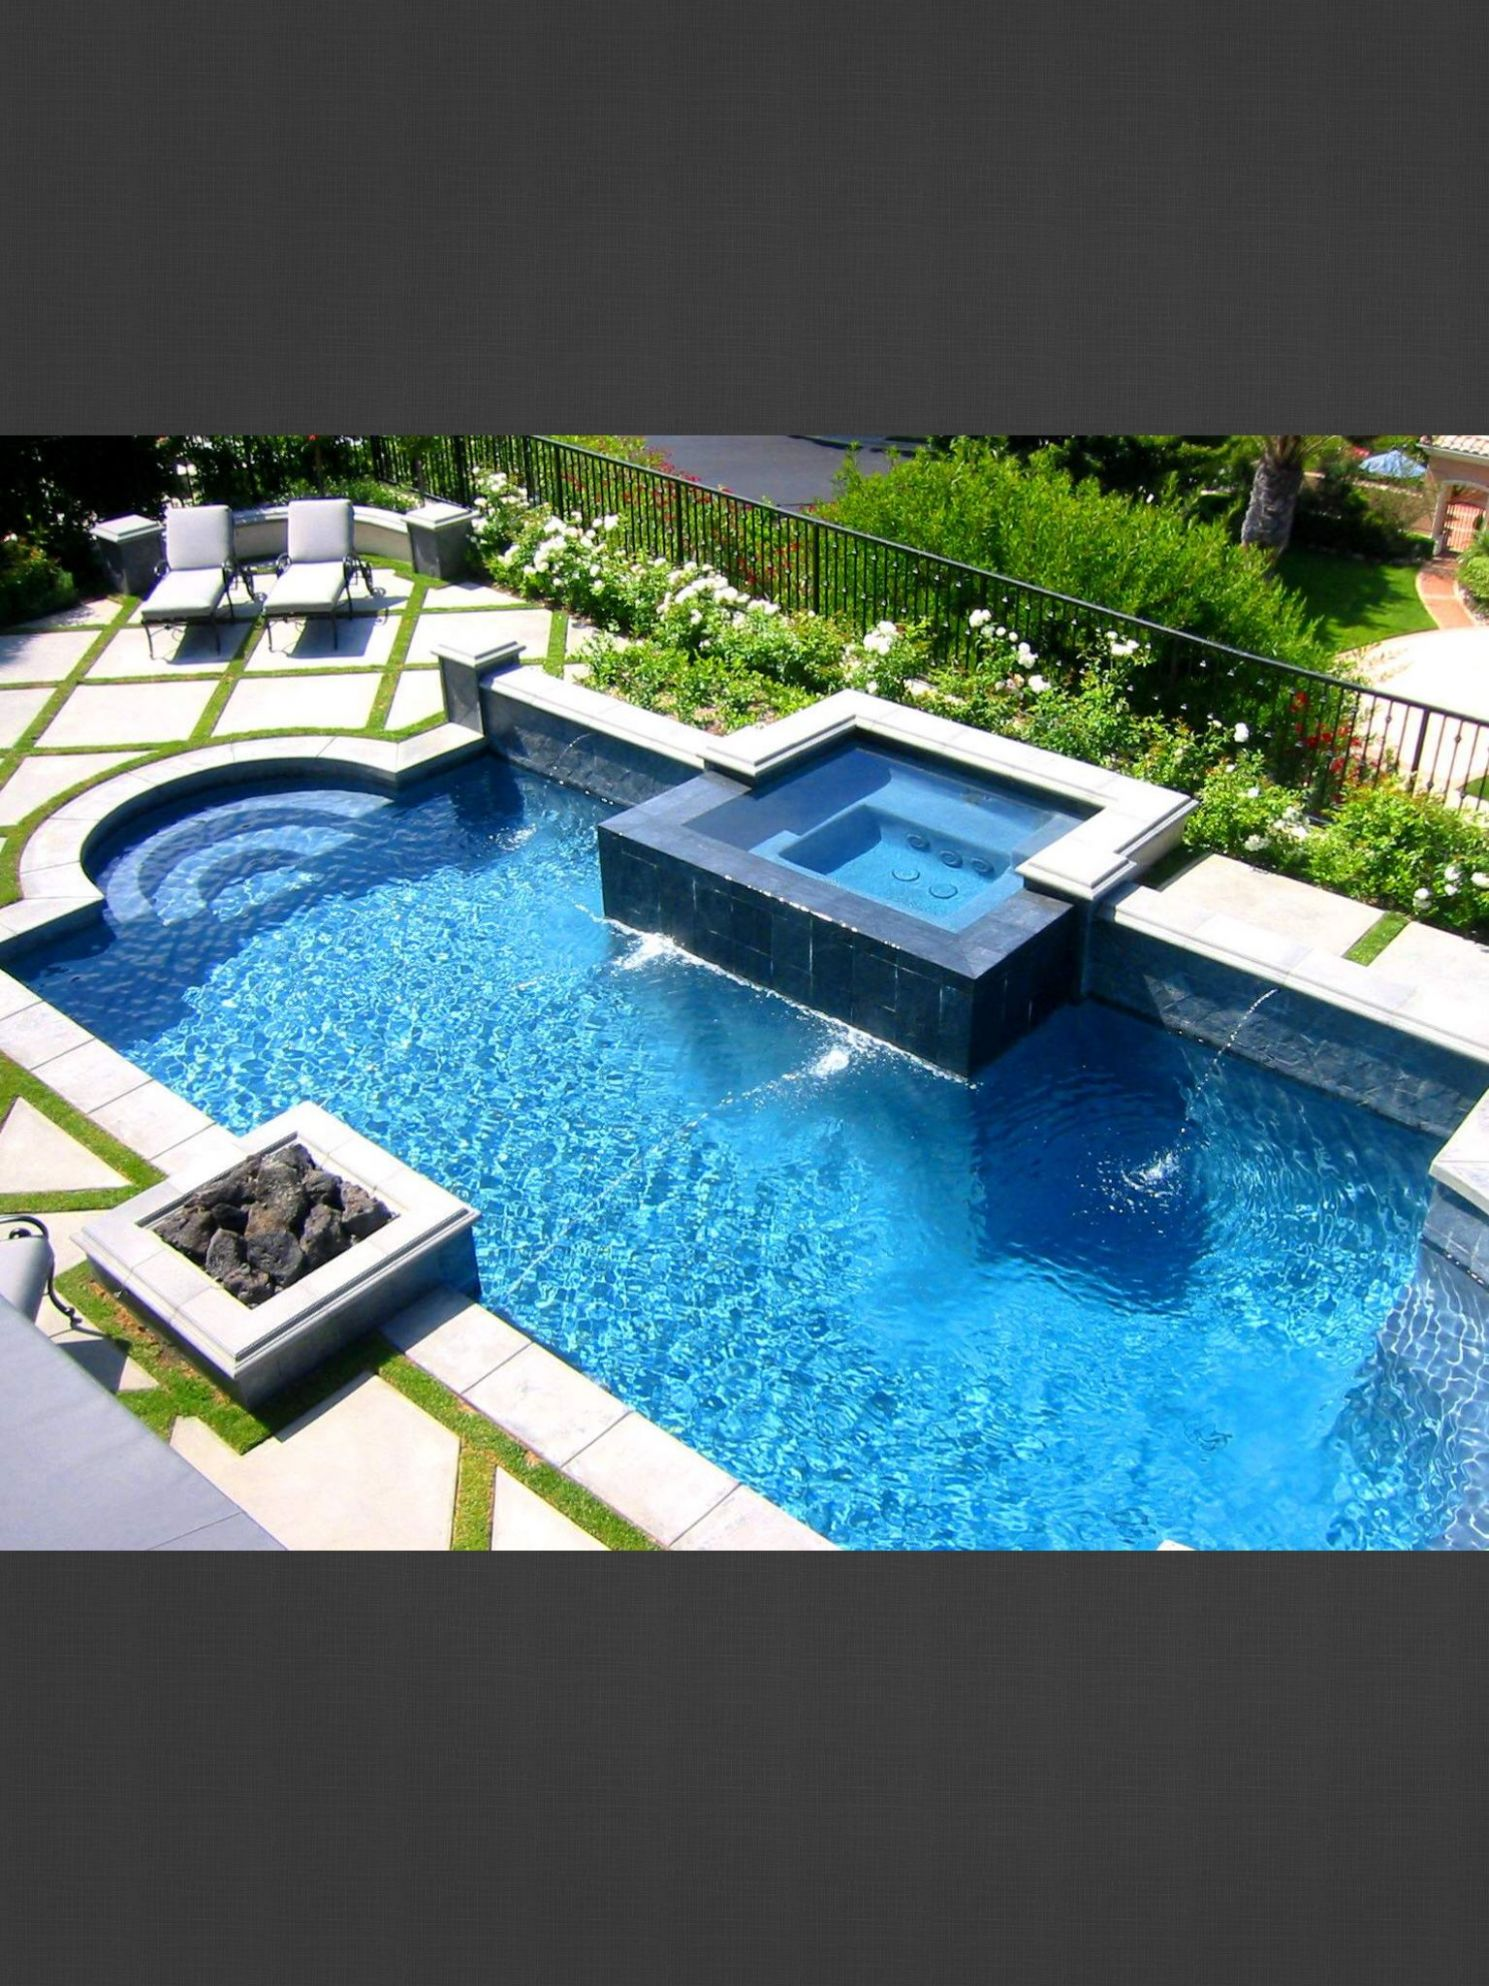 Grass and cement deck around pool | Hot tub garden, Fire pit ..